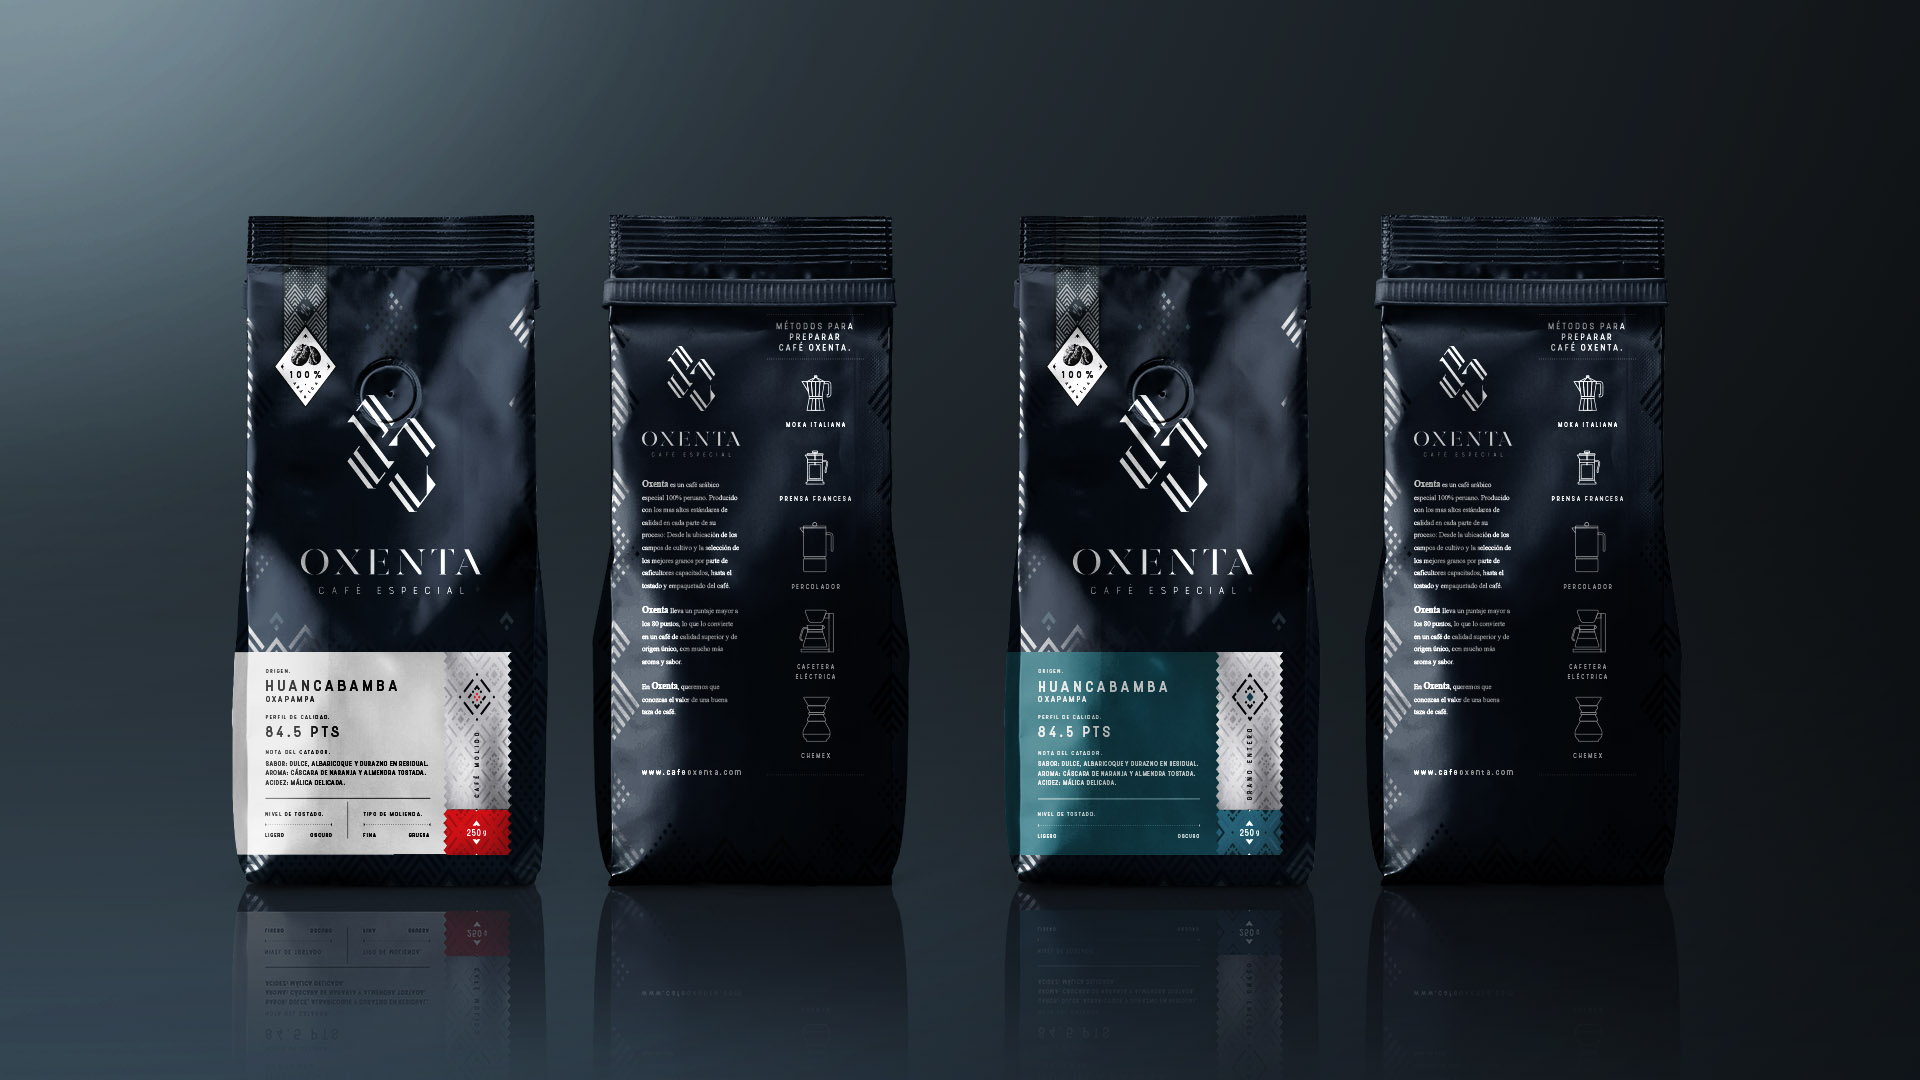 oxenta coffee bag1.jpg